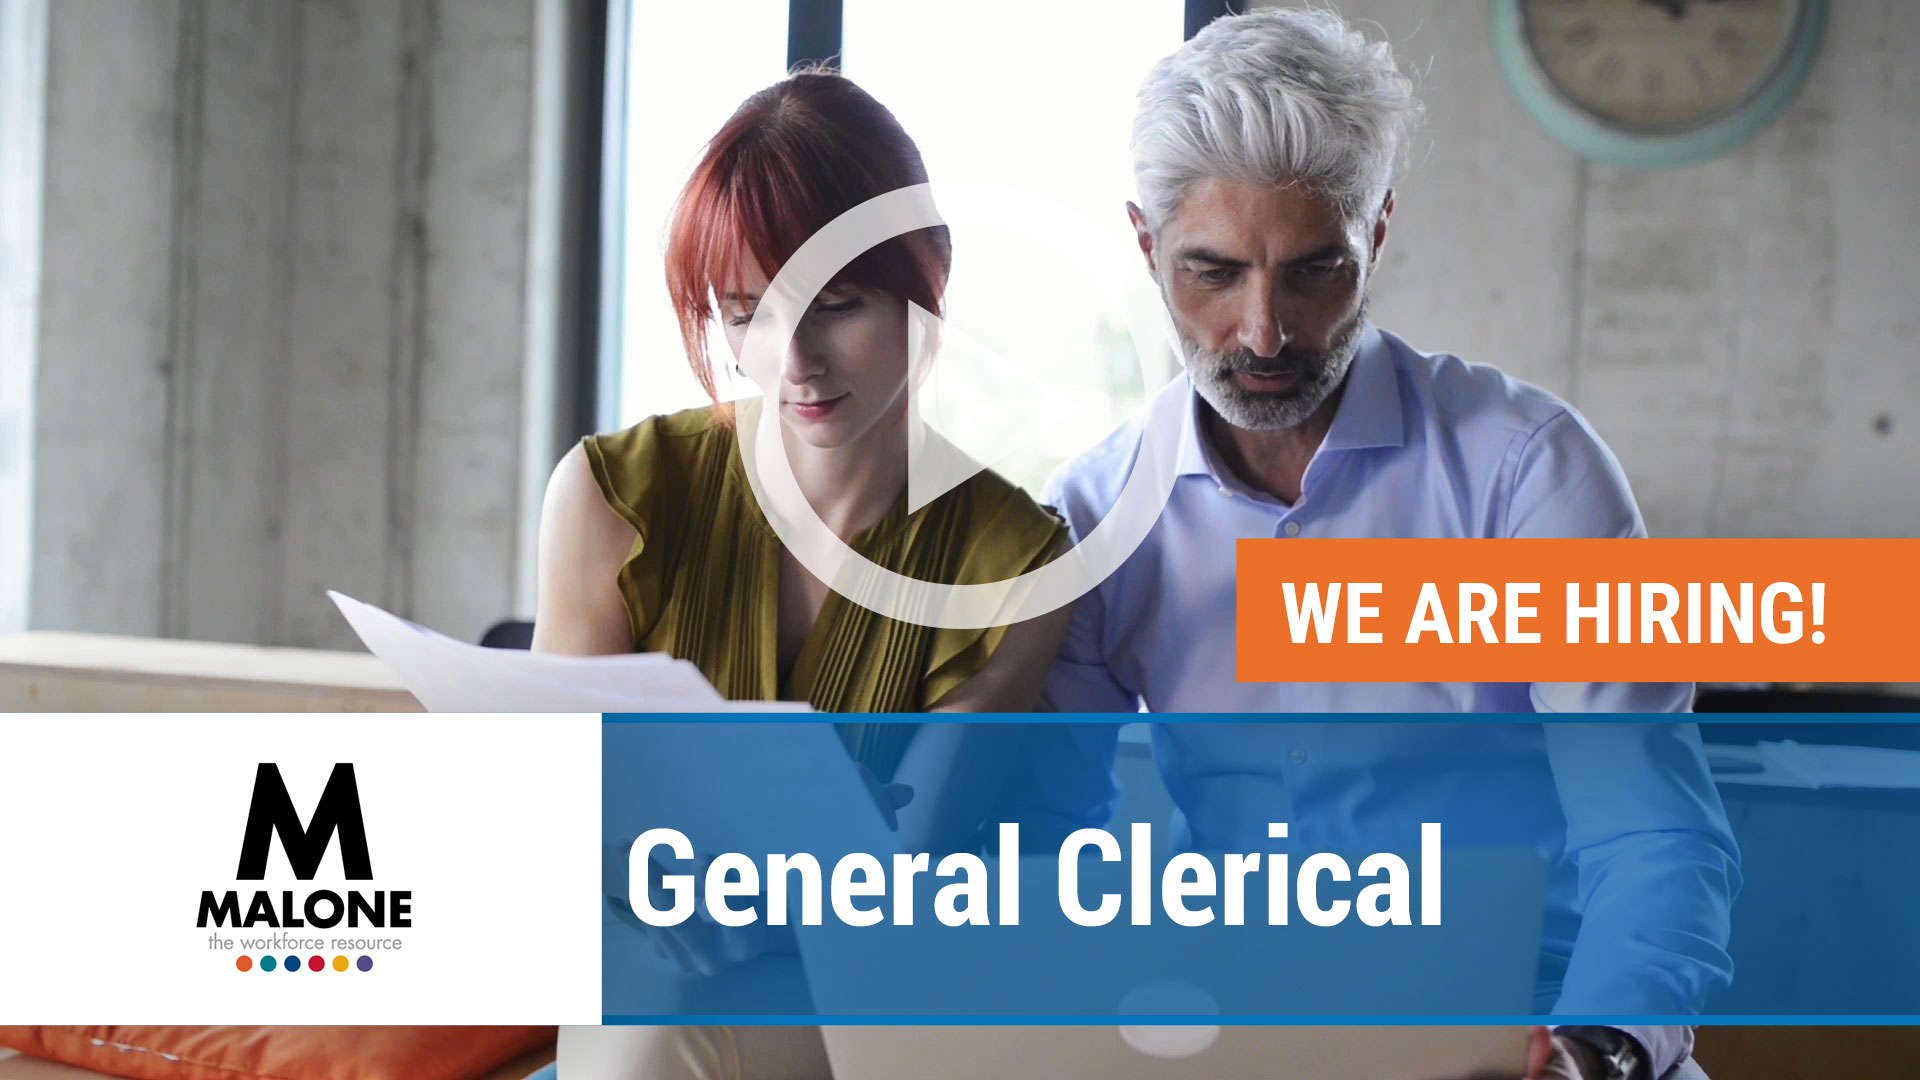 Watch our careers video for available job opening General Clerical in Carol Stream, Illinois